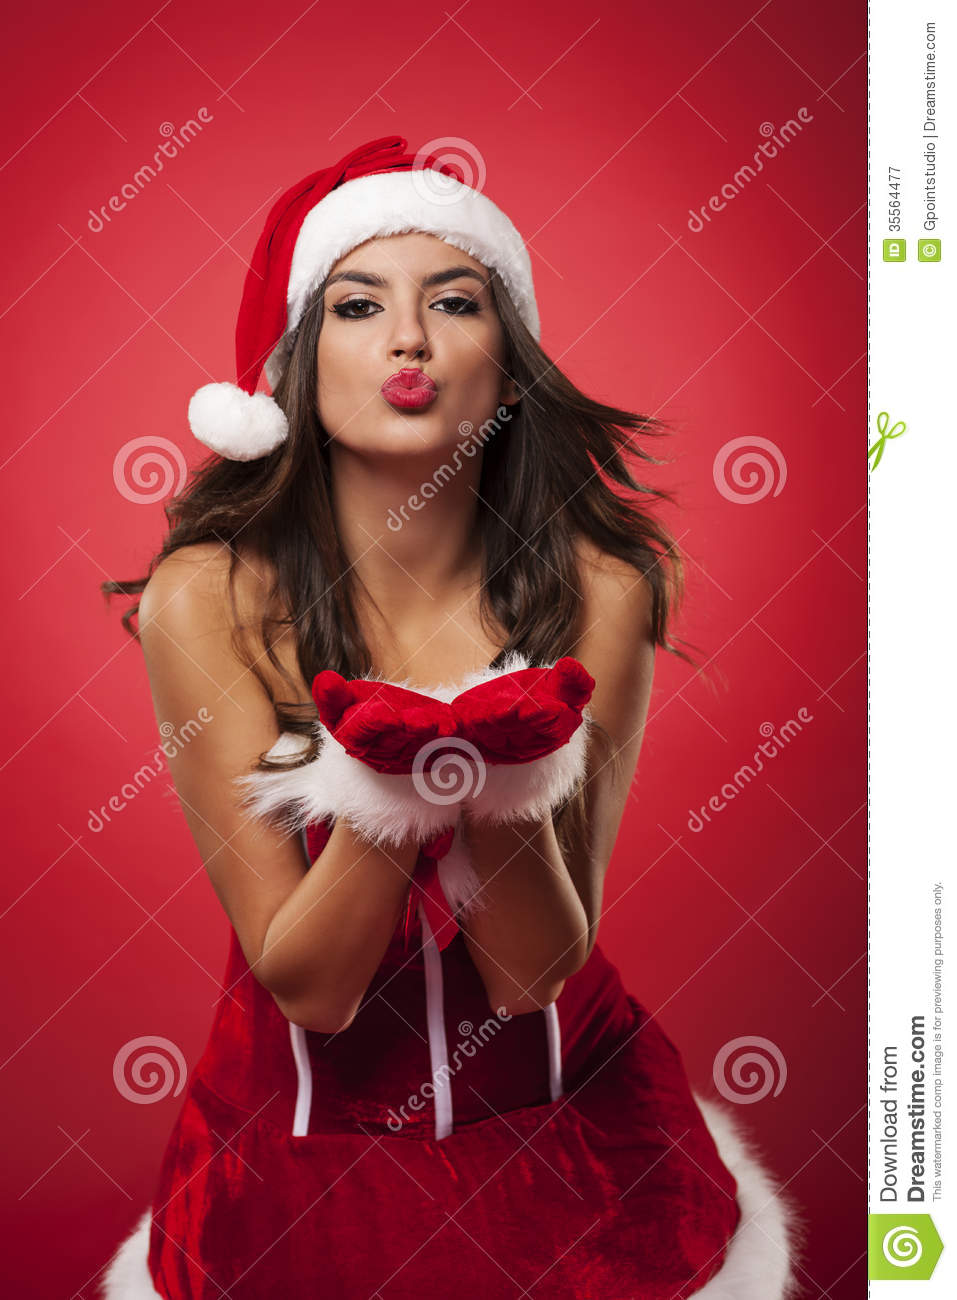 Kisses from sexy Mrs claus.